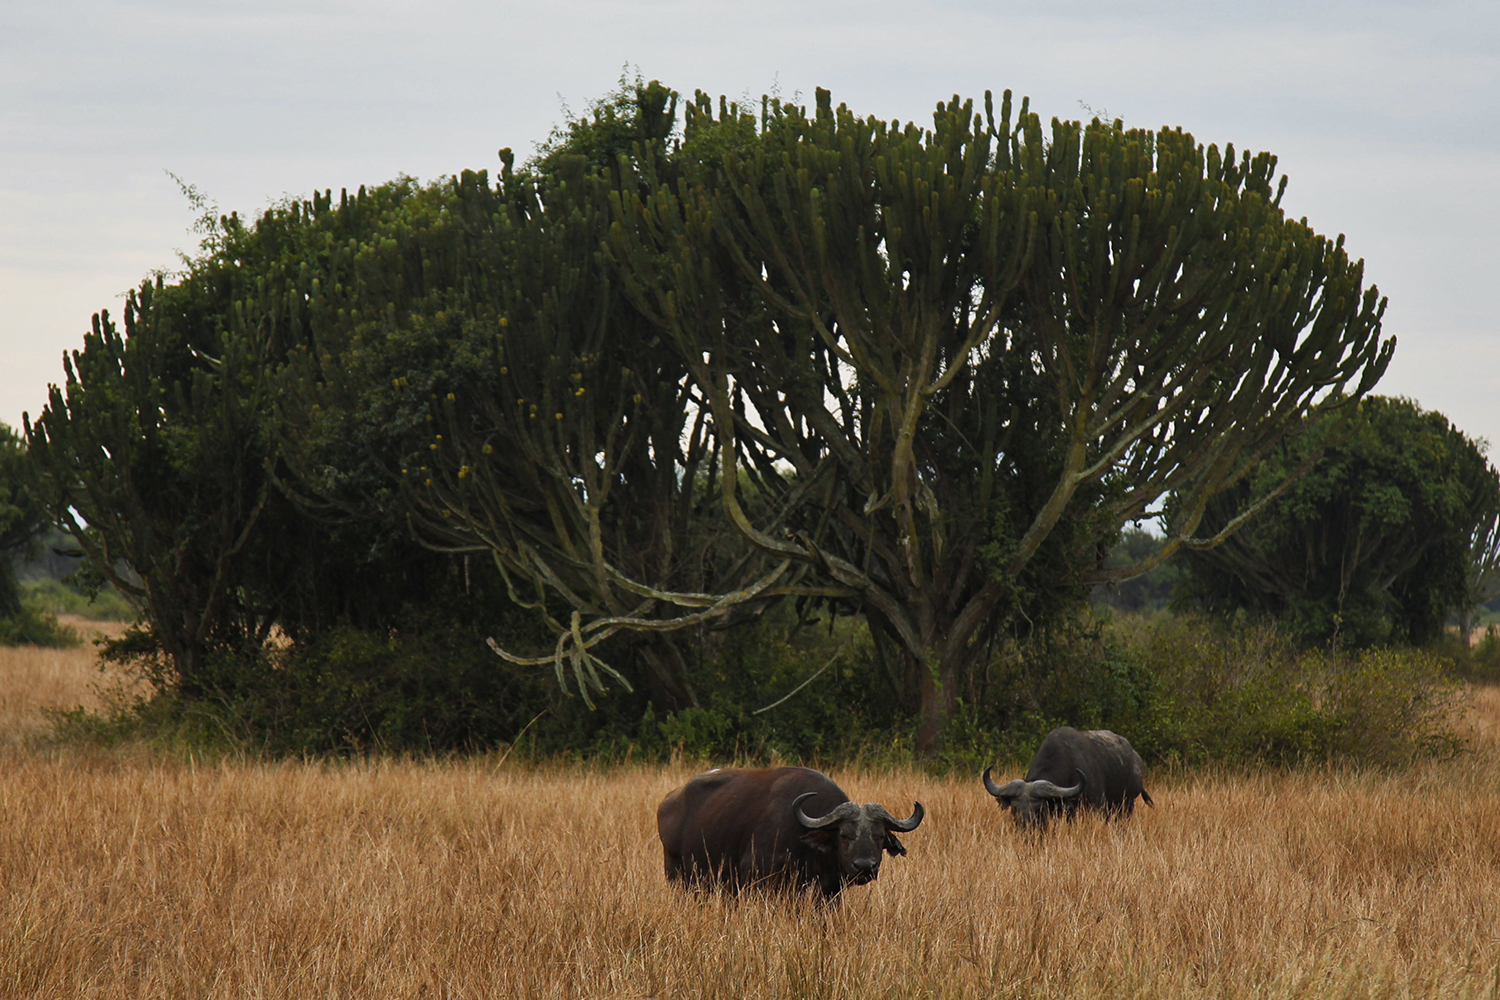 Buffaloes graze inside Queen Elizabeth National Park on Feb. 4, 2020.